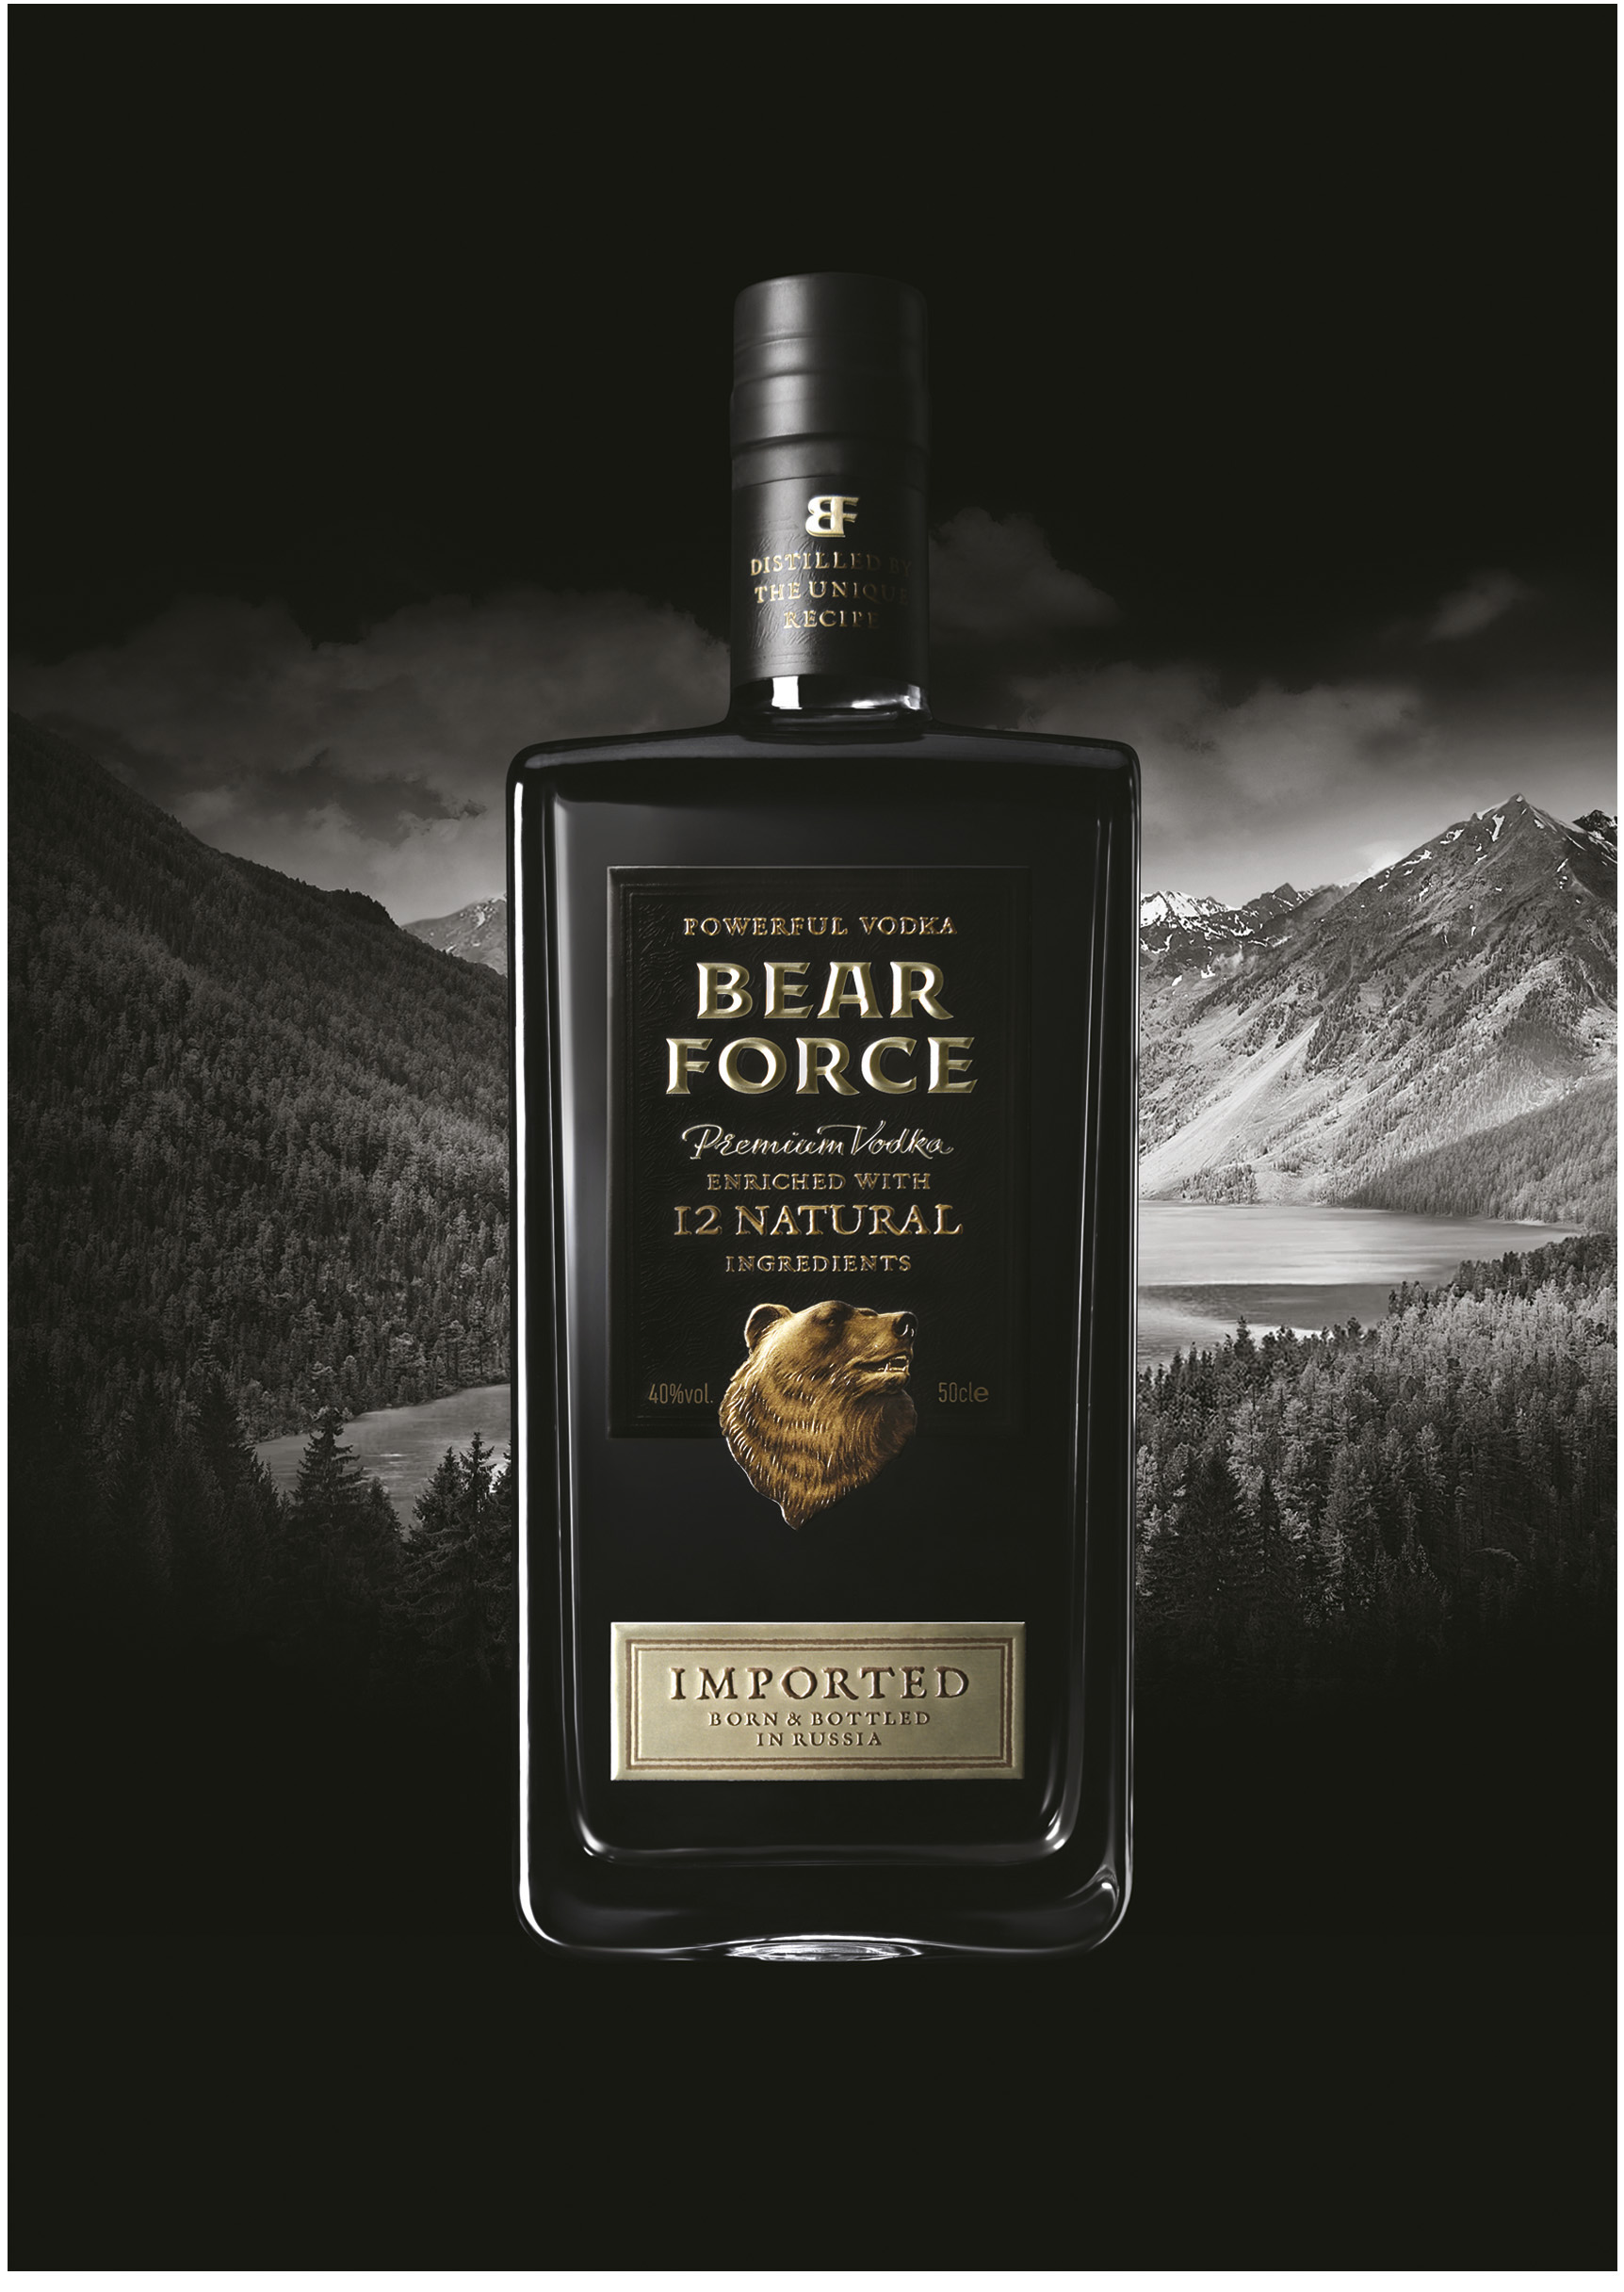 image_bear_force (2)